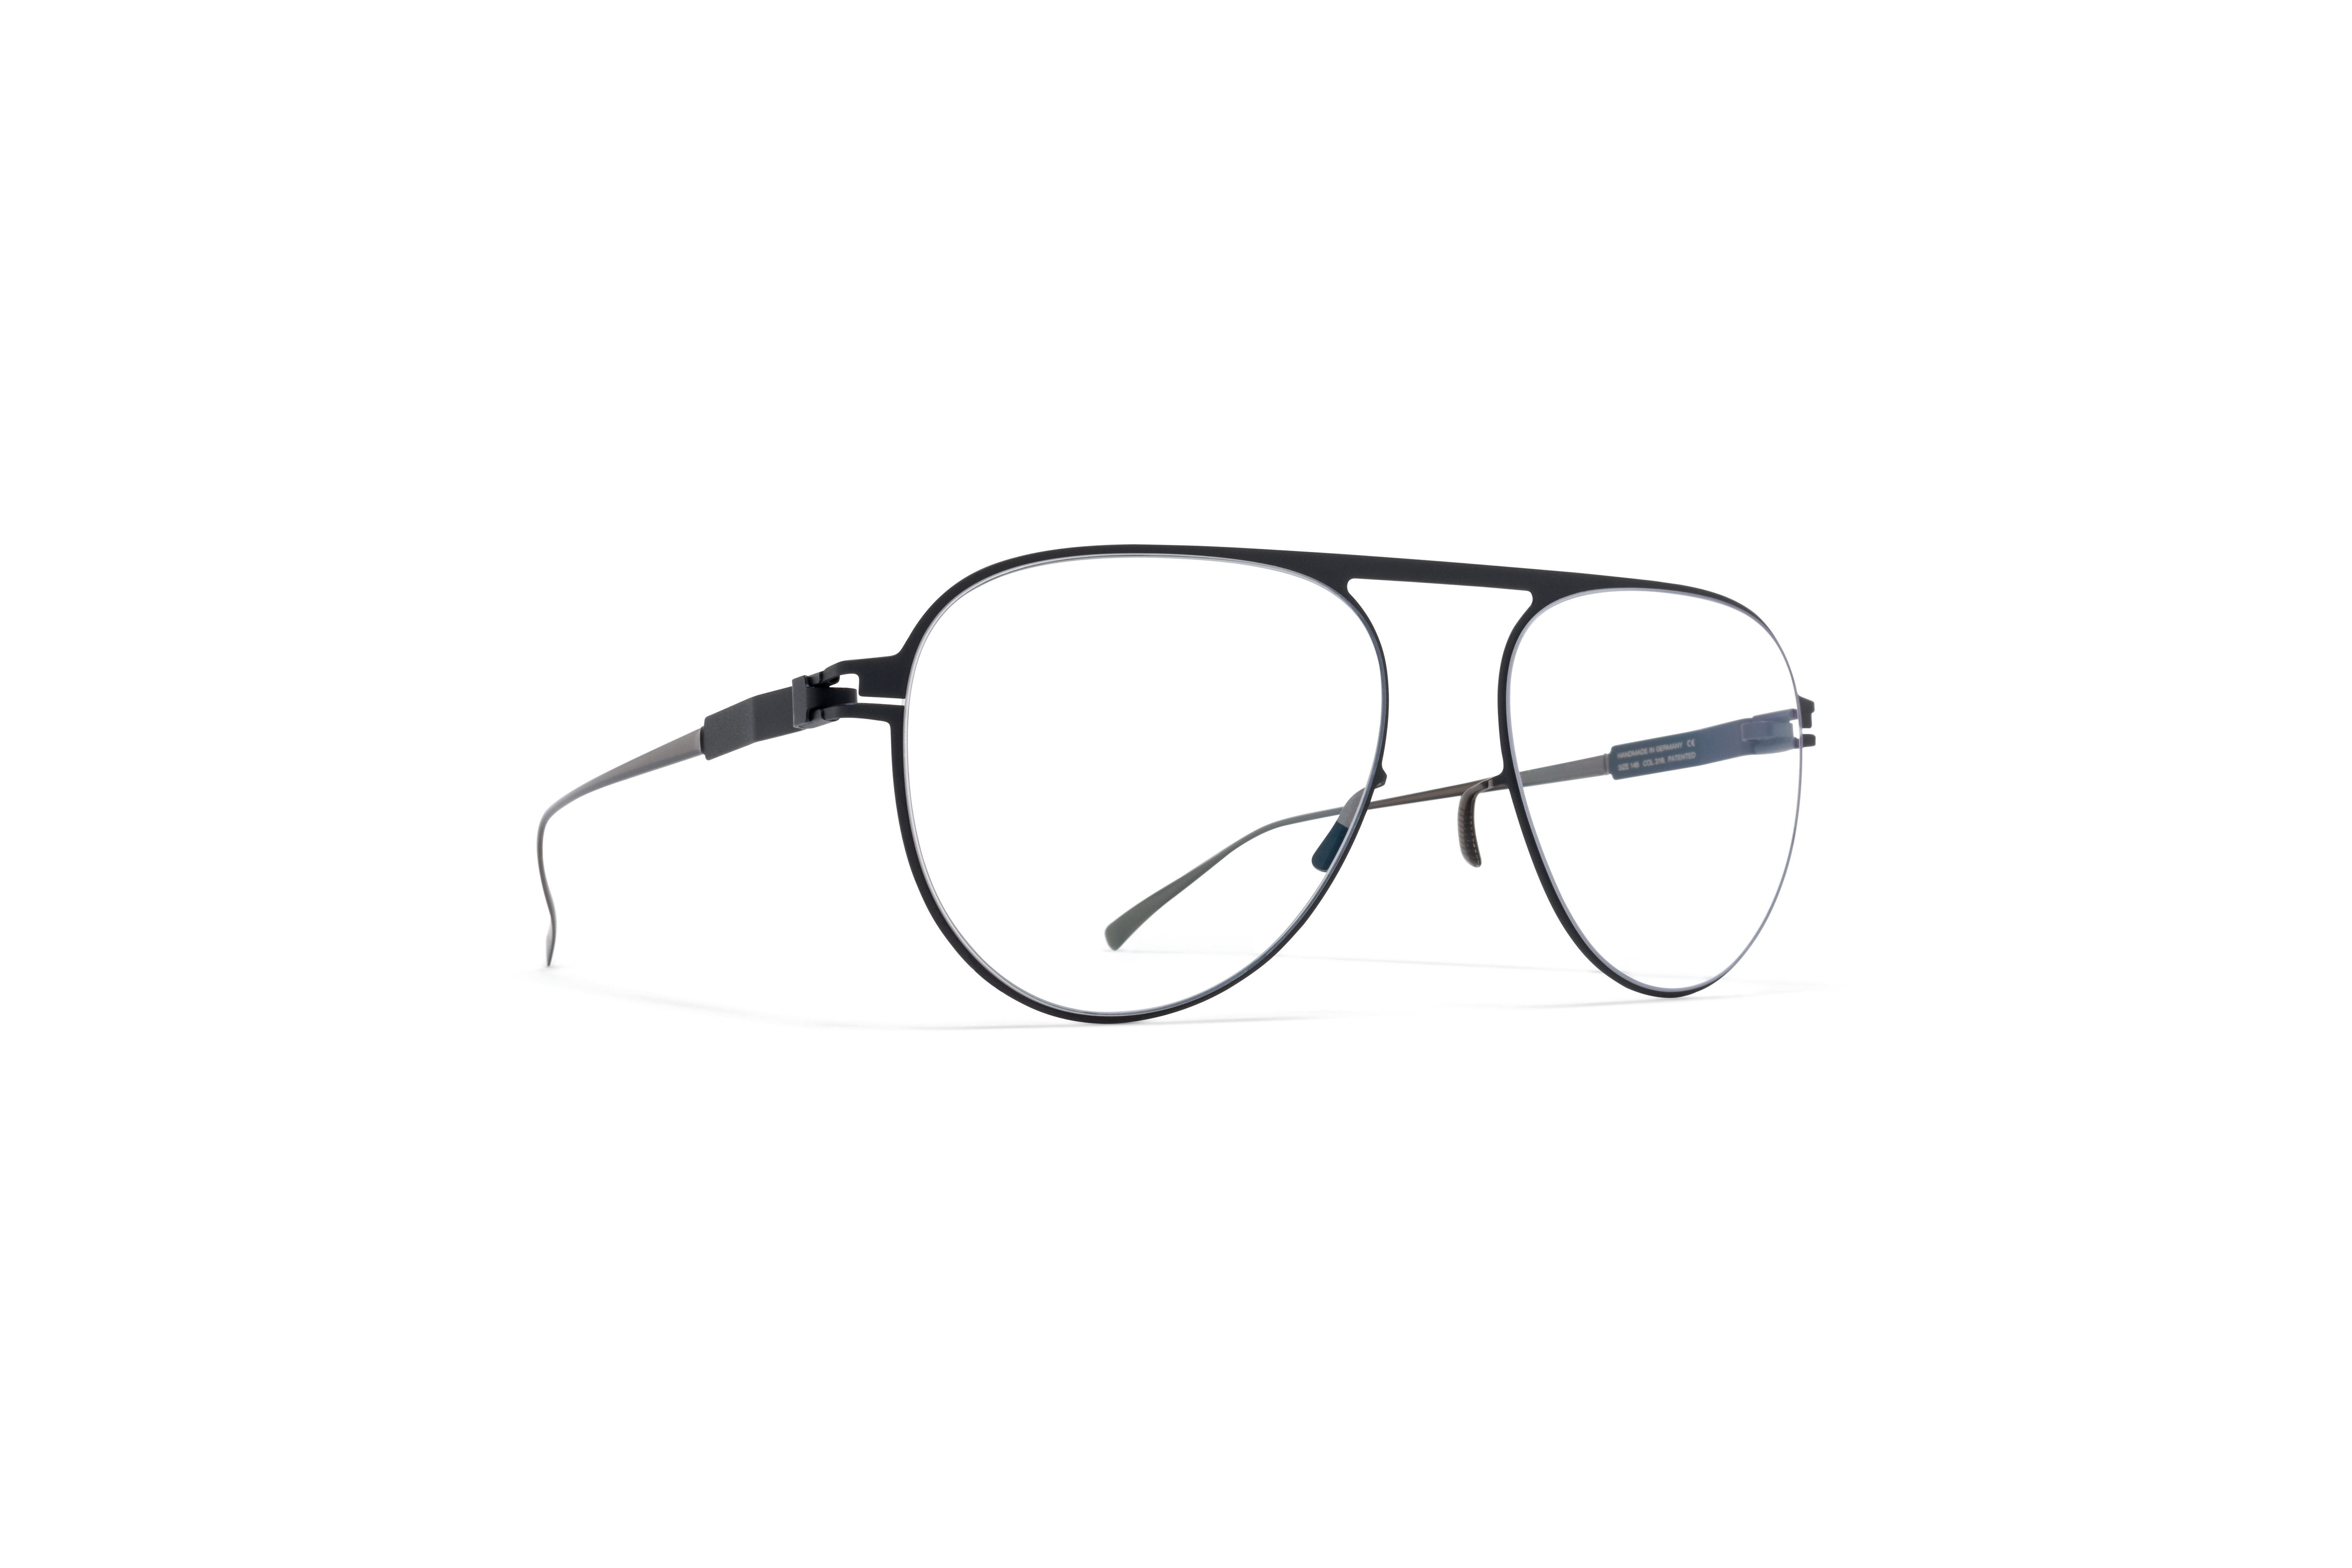 MYKITA No1 Rx Kent Shiny Graphite Nearly Black Cle59f9dcc9ed8df